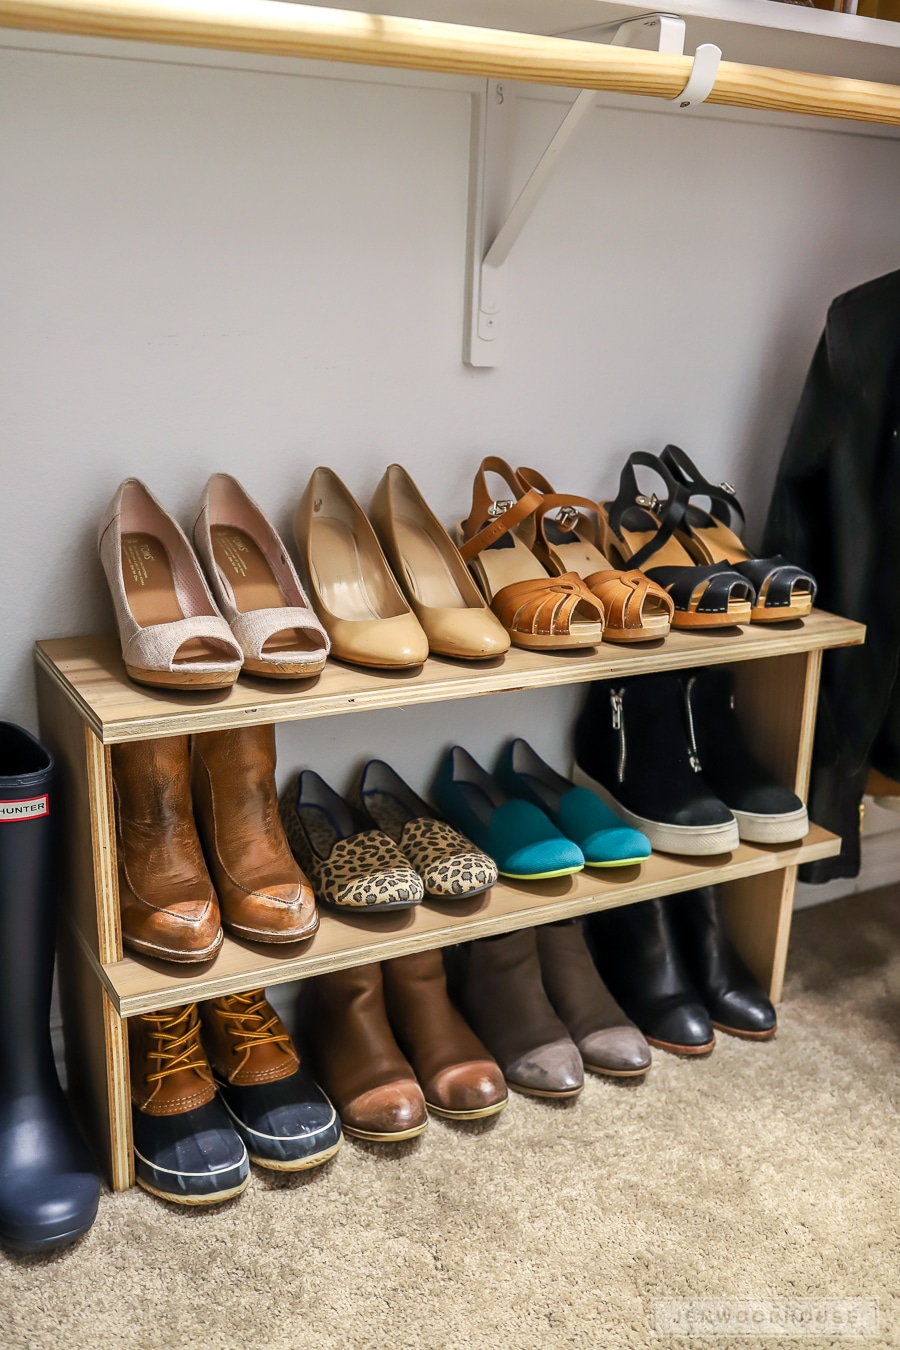 How to build an easy DIY shoe shelf organizer out of scrap wood